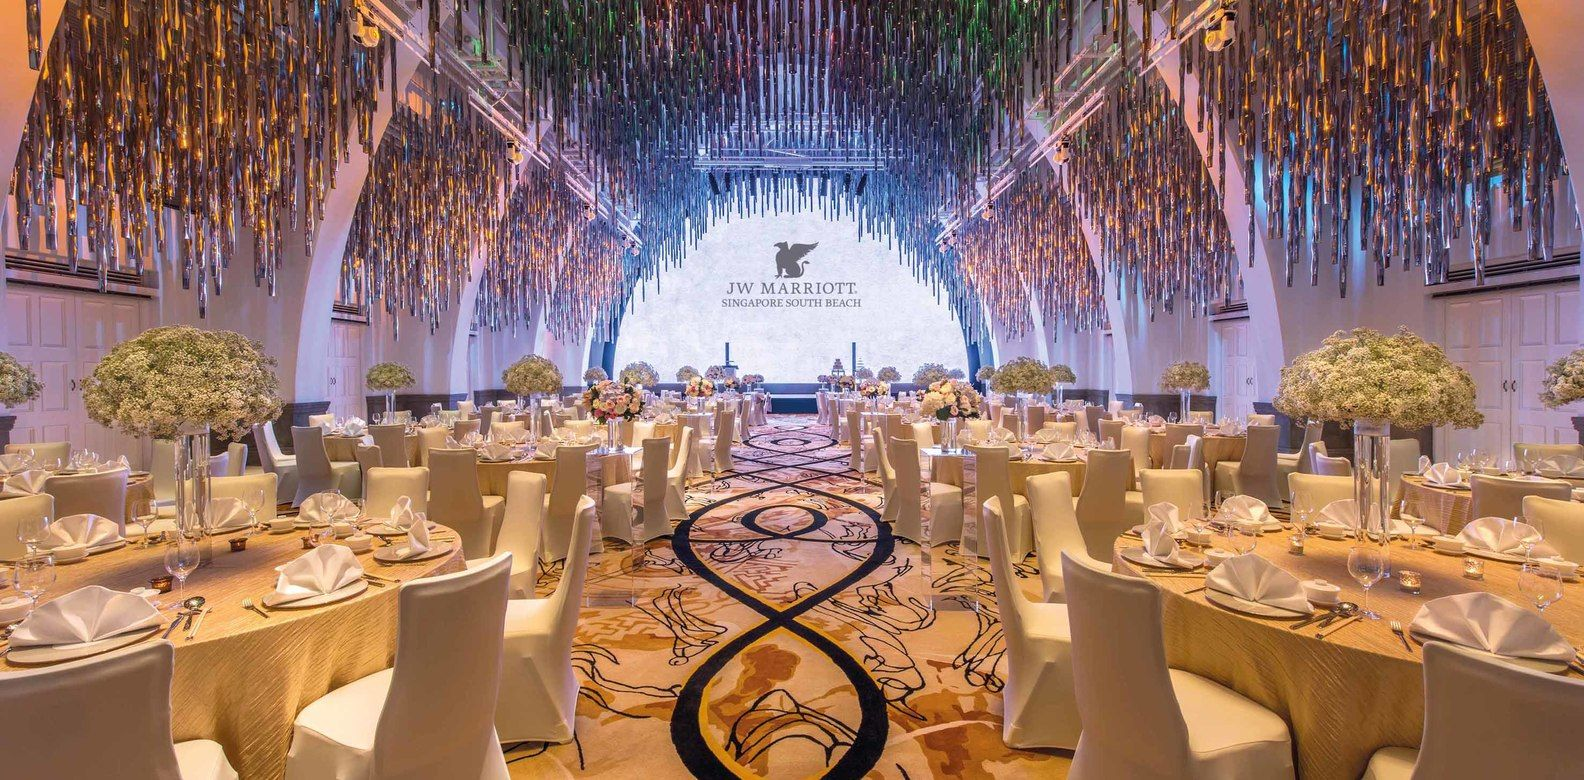 4 Places That Would Make Amazing Wedding Venues Singapore Tatler